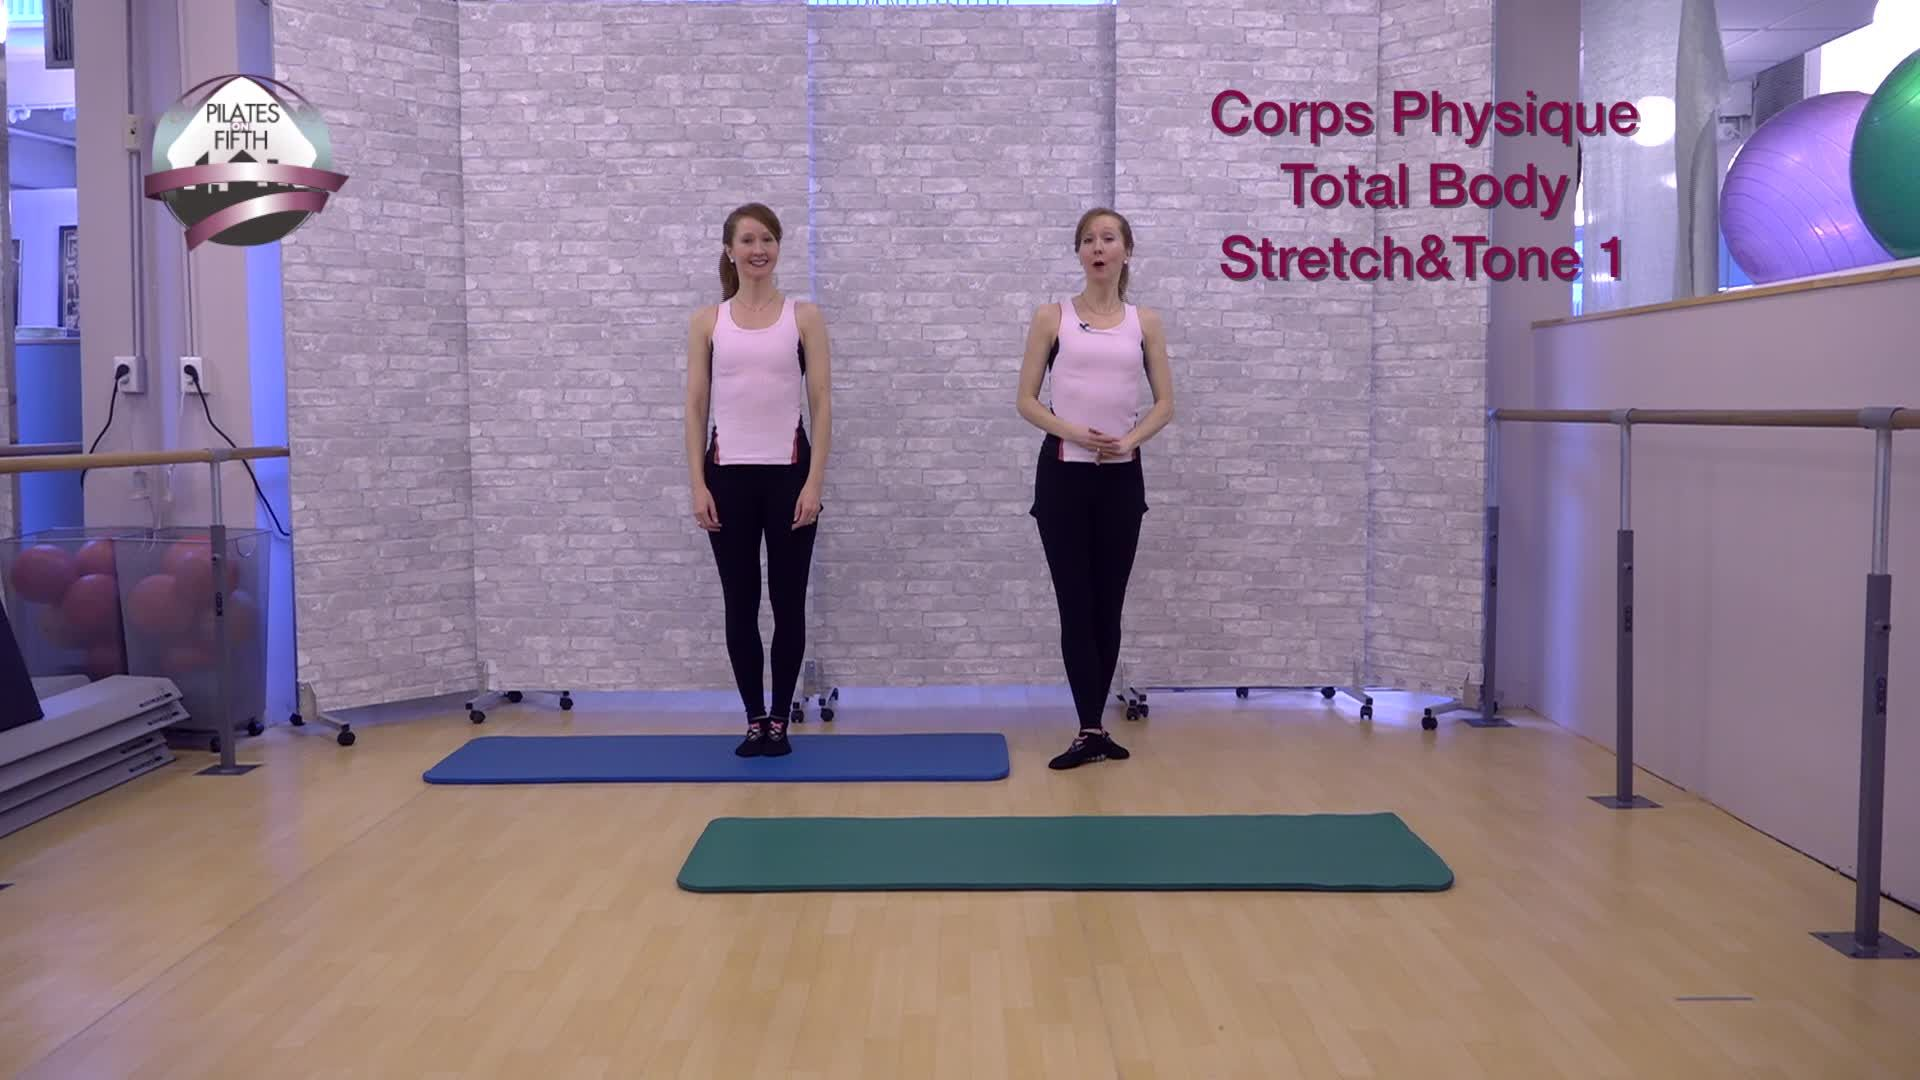 Corps Physique Total Body Stretch and Tone 1